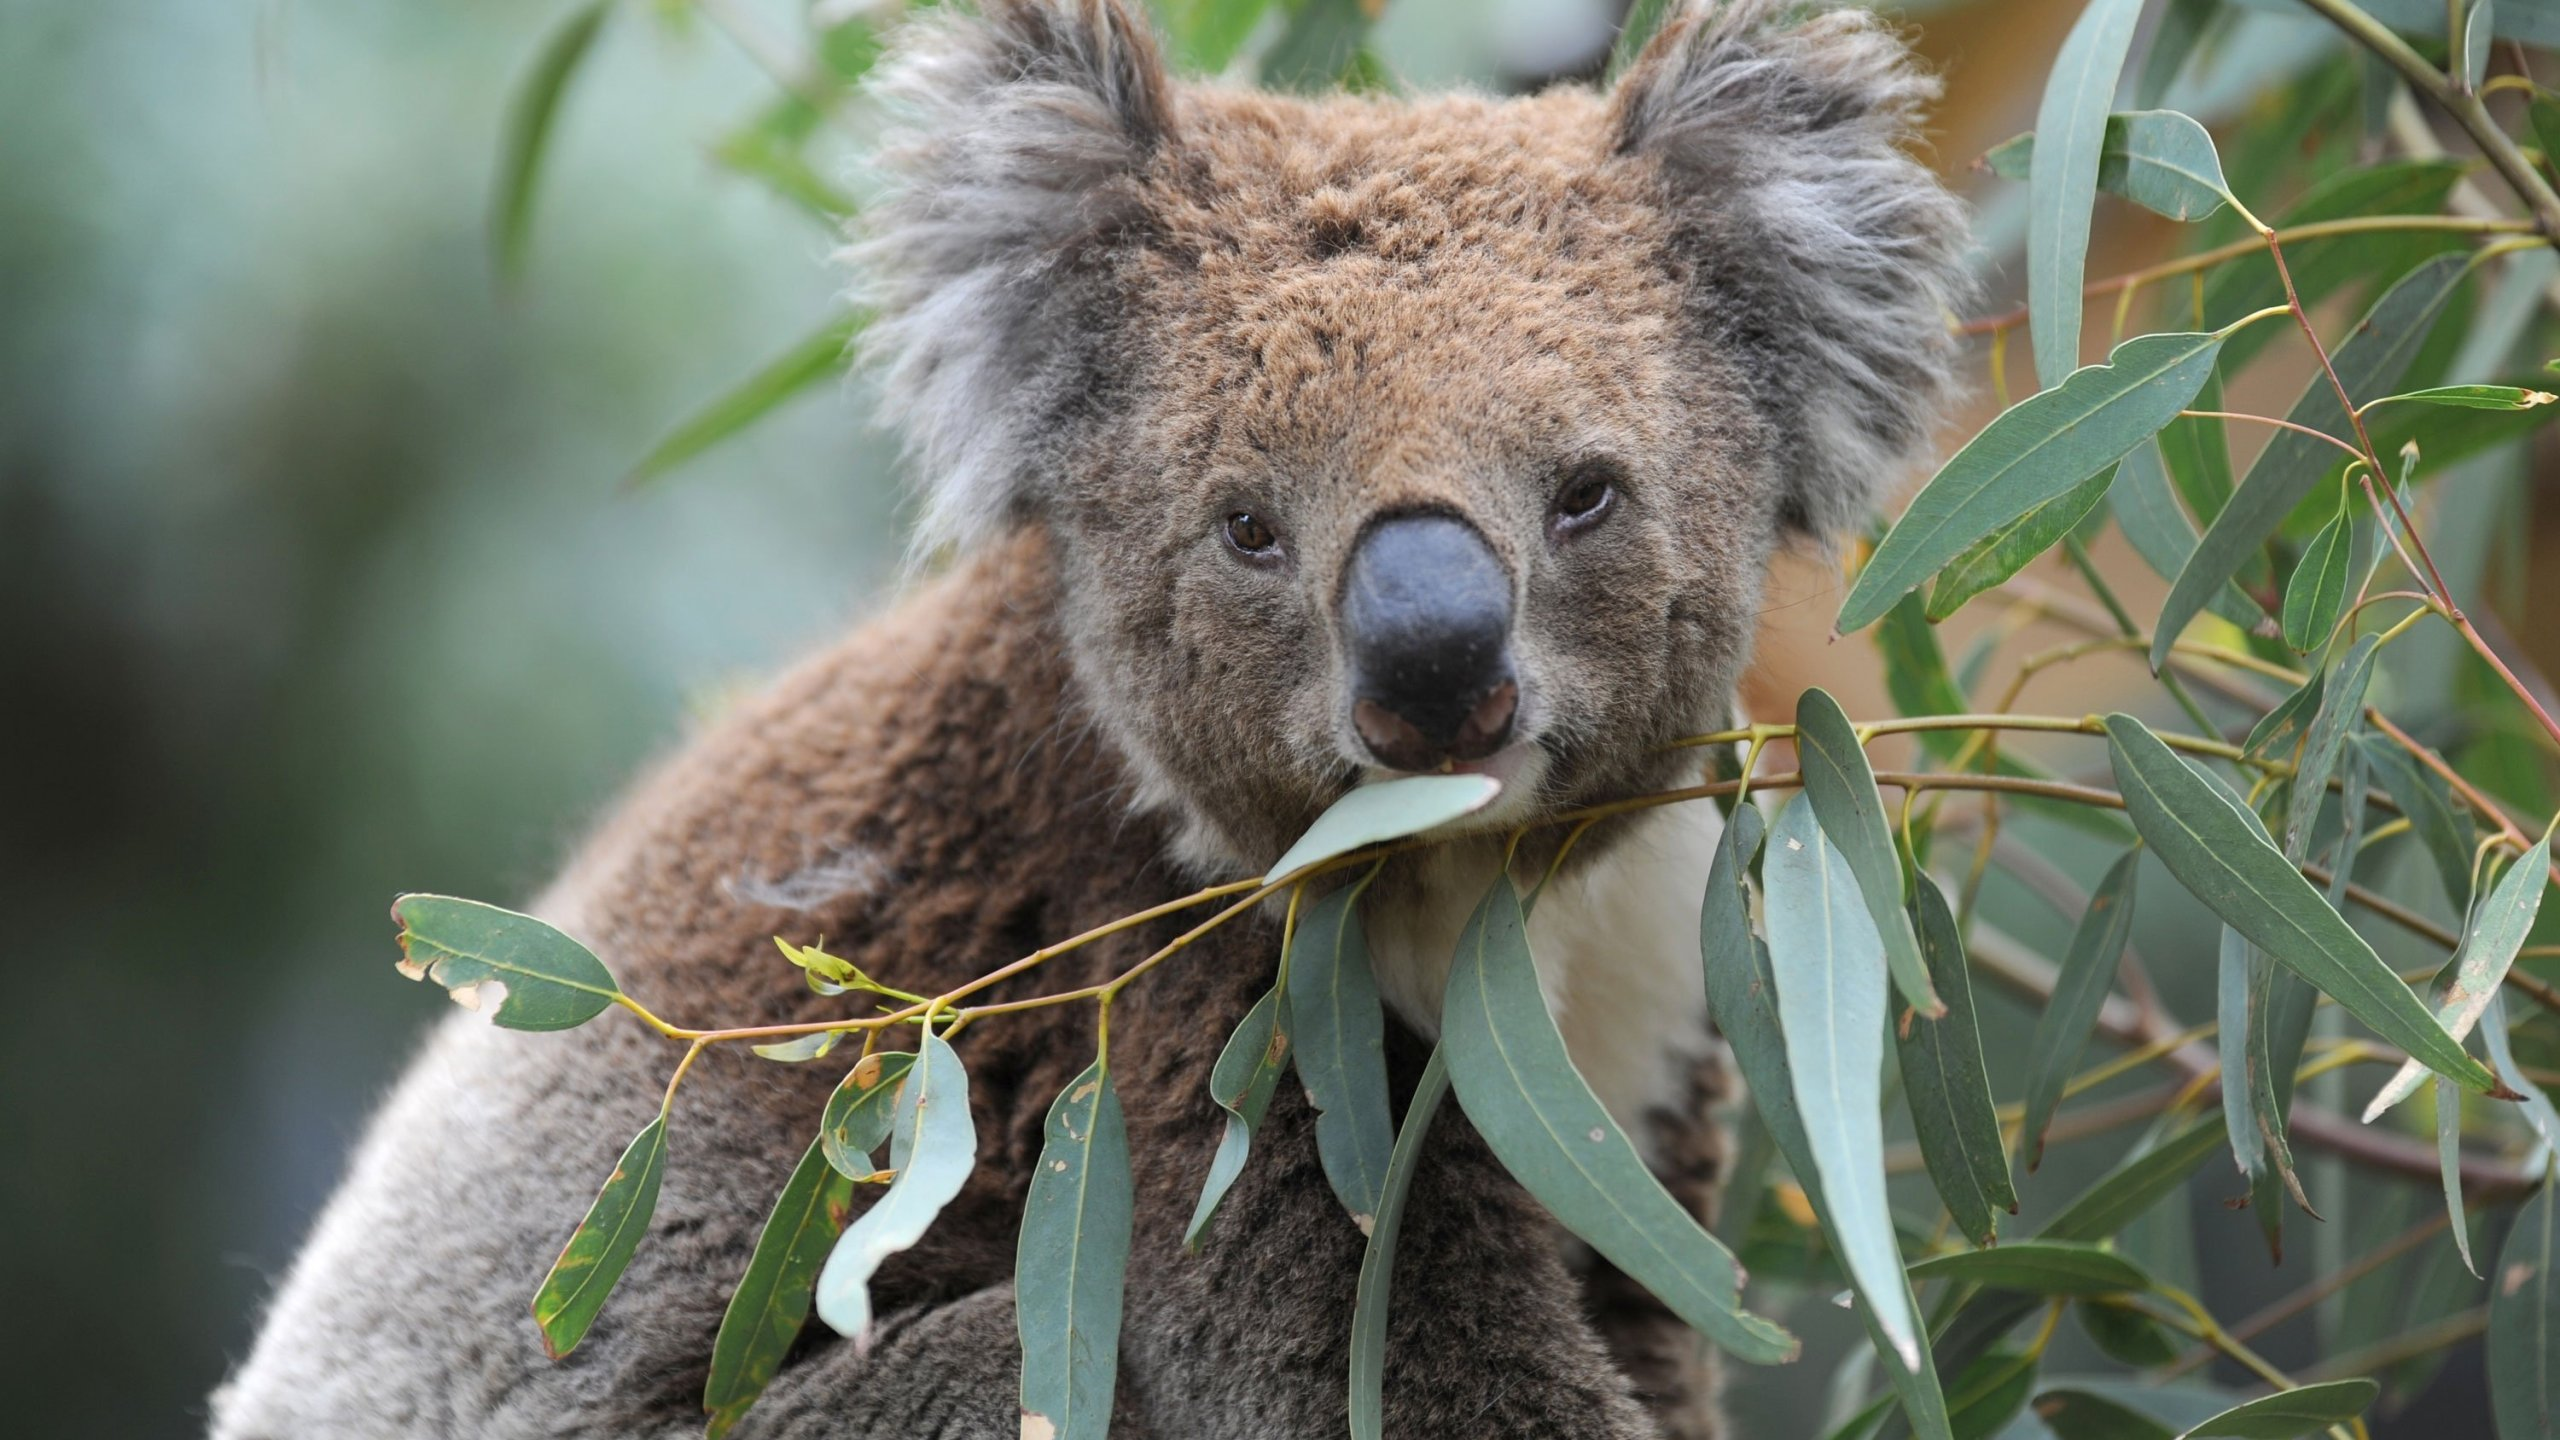 The wildfires torching southern Australia have wiped out much of the koala population, stoking fears that the national icon is getting closer to extinction.